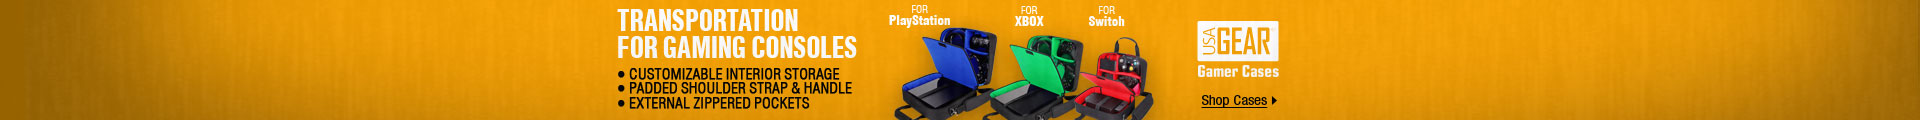 Transportation for gaming consoles